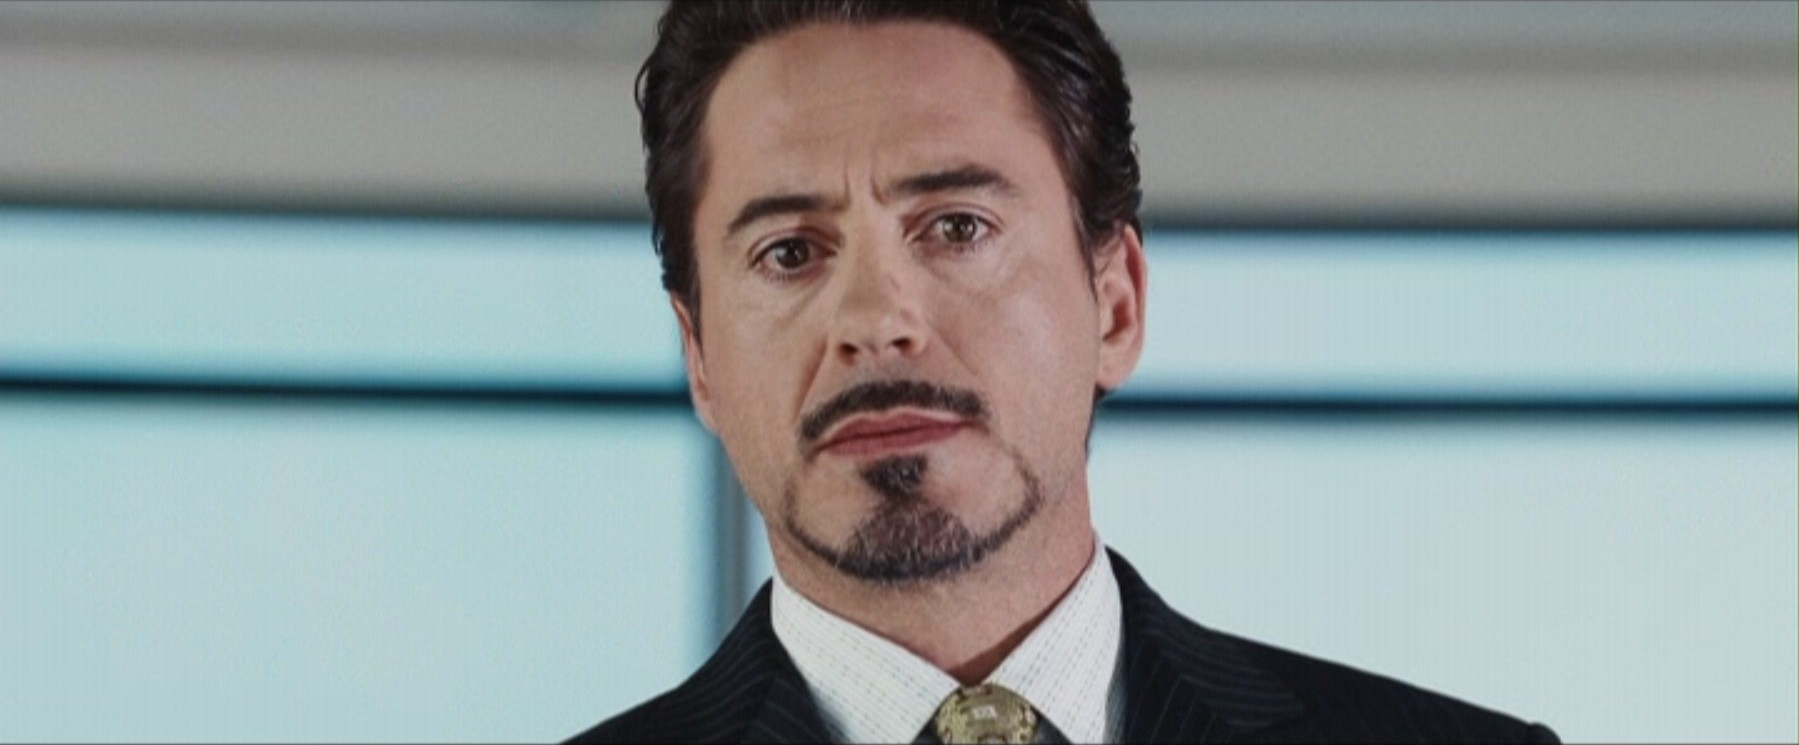 Robert downey jr movie credits